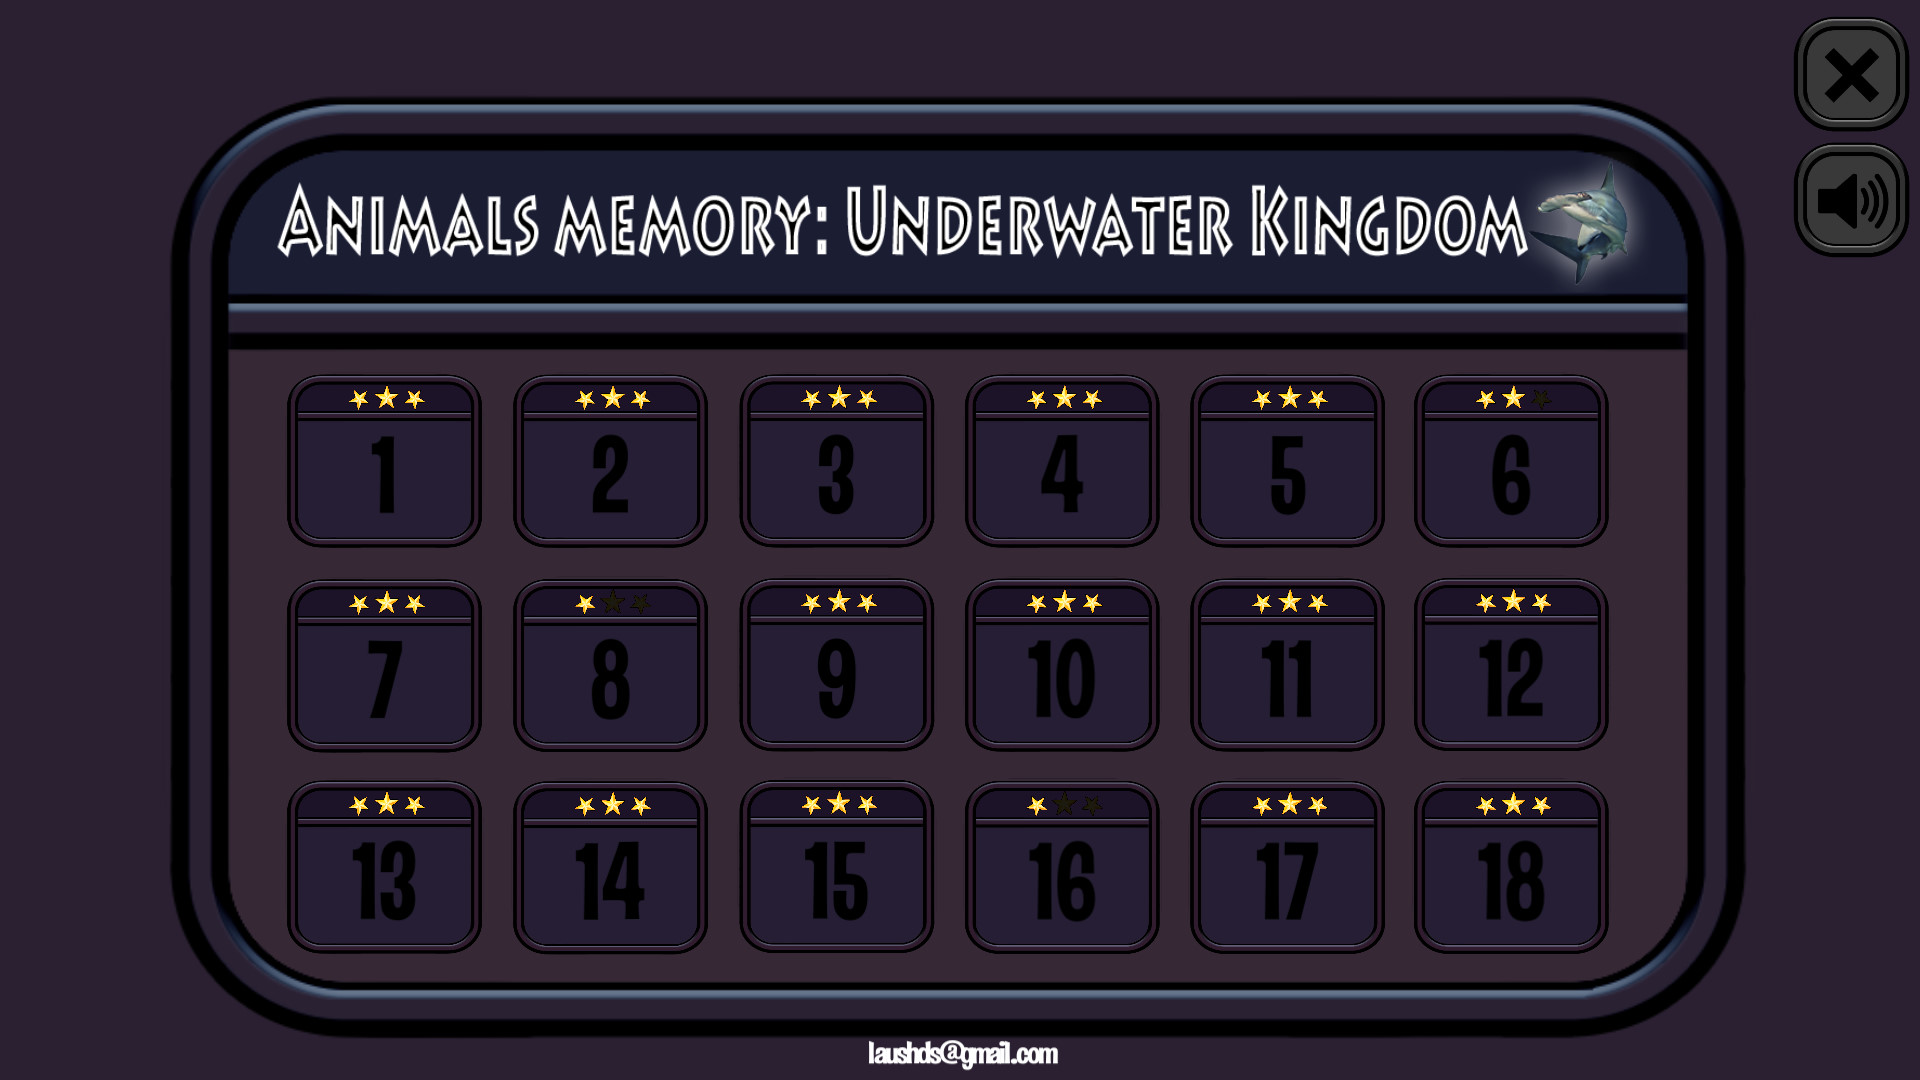 Animals Memory: Underwater Kingdom for PC screenshot